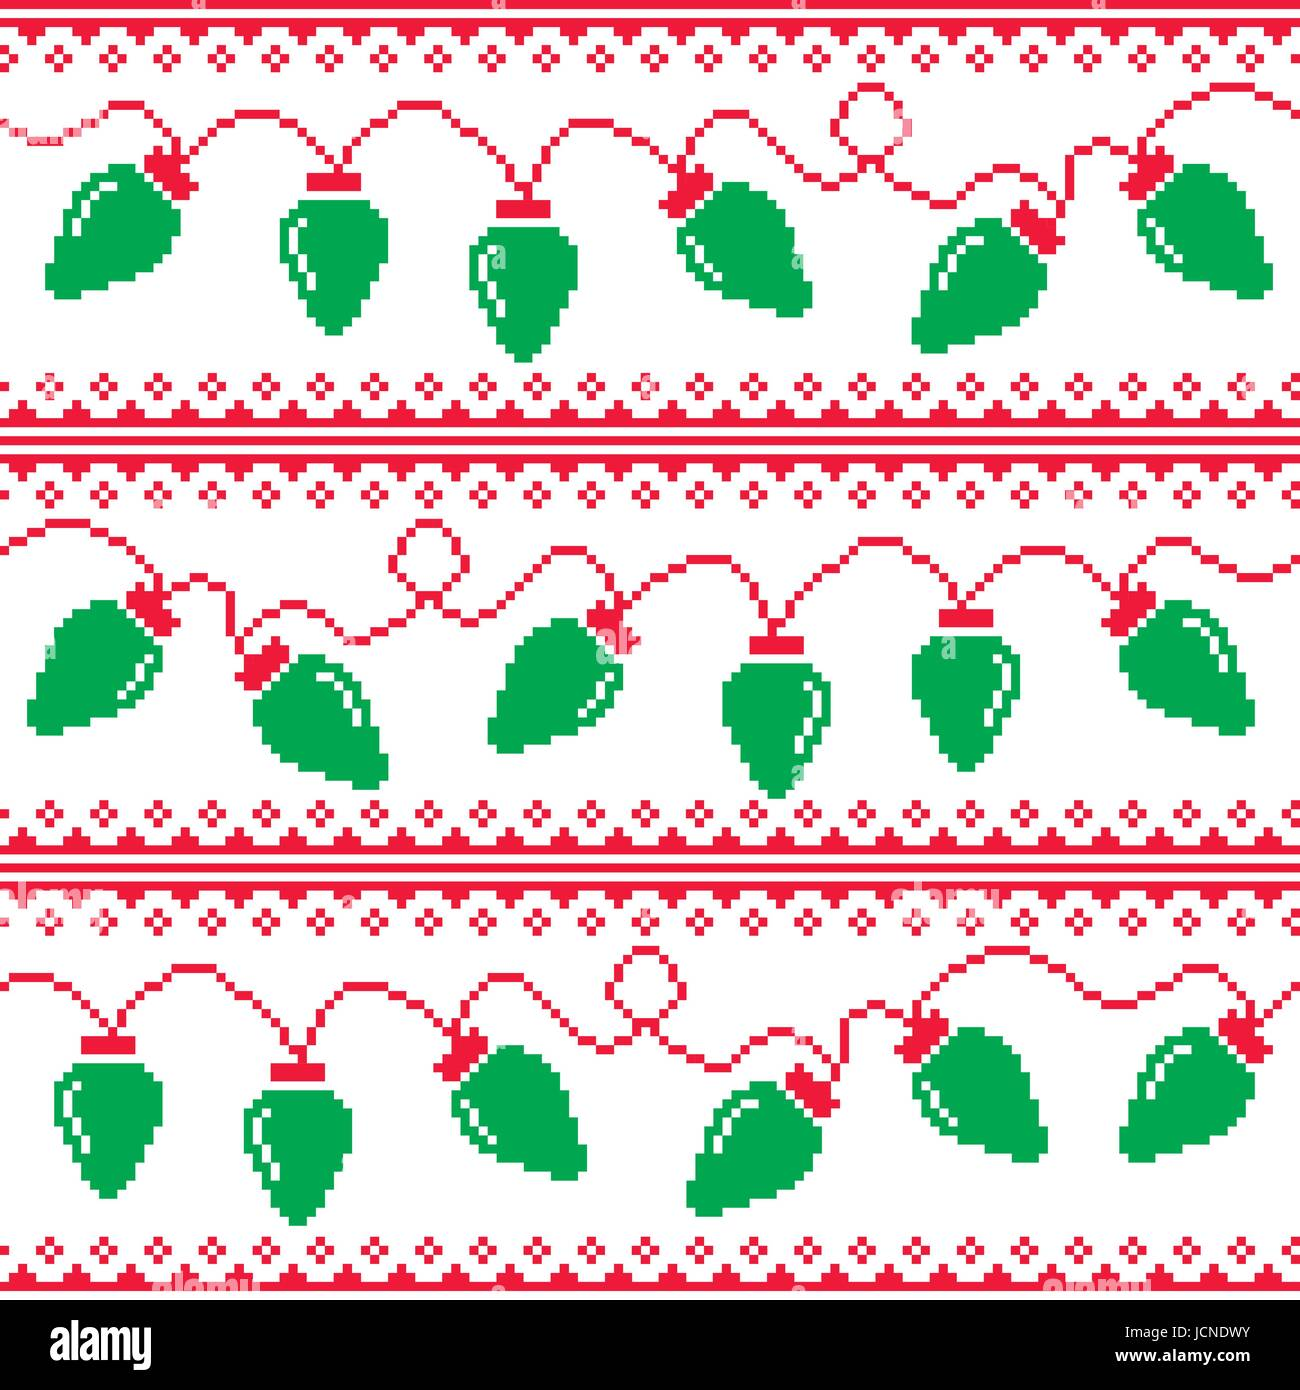 Ugly Christmas Sweaters Patterns.Christmas Tree Lights Seamless Pattern Ugly Christmas